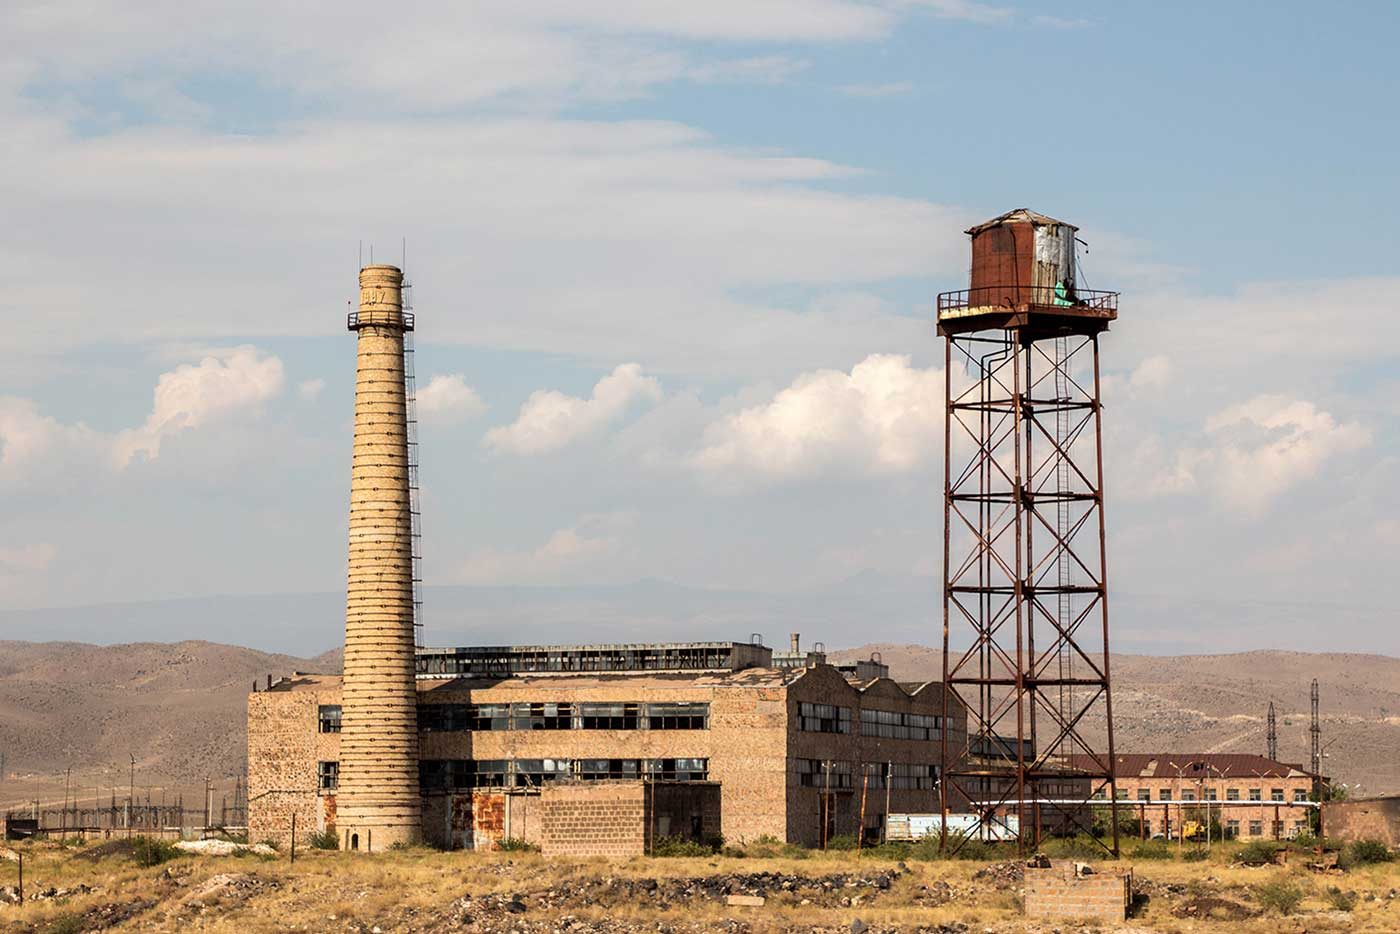 Remnants of past industry lay scattered about the plains.